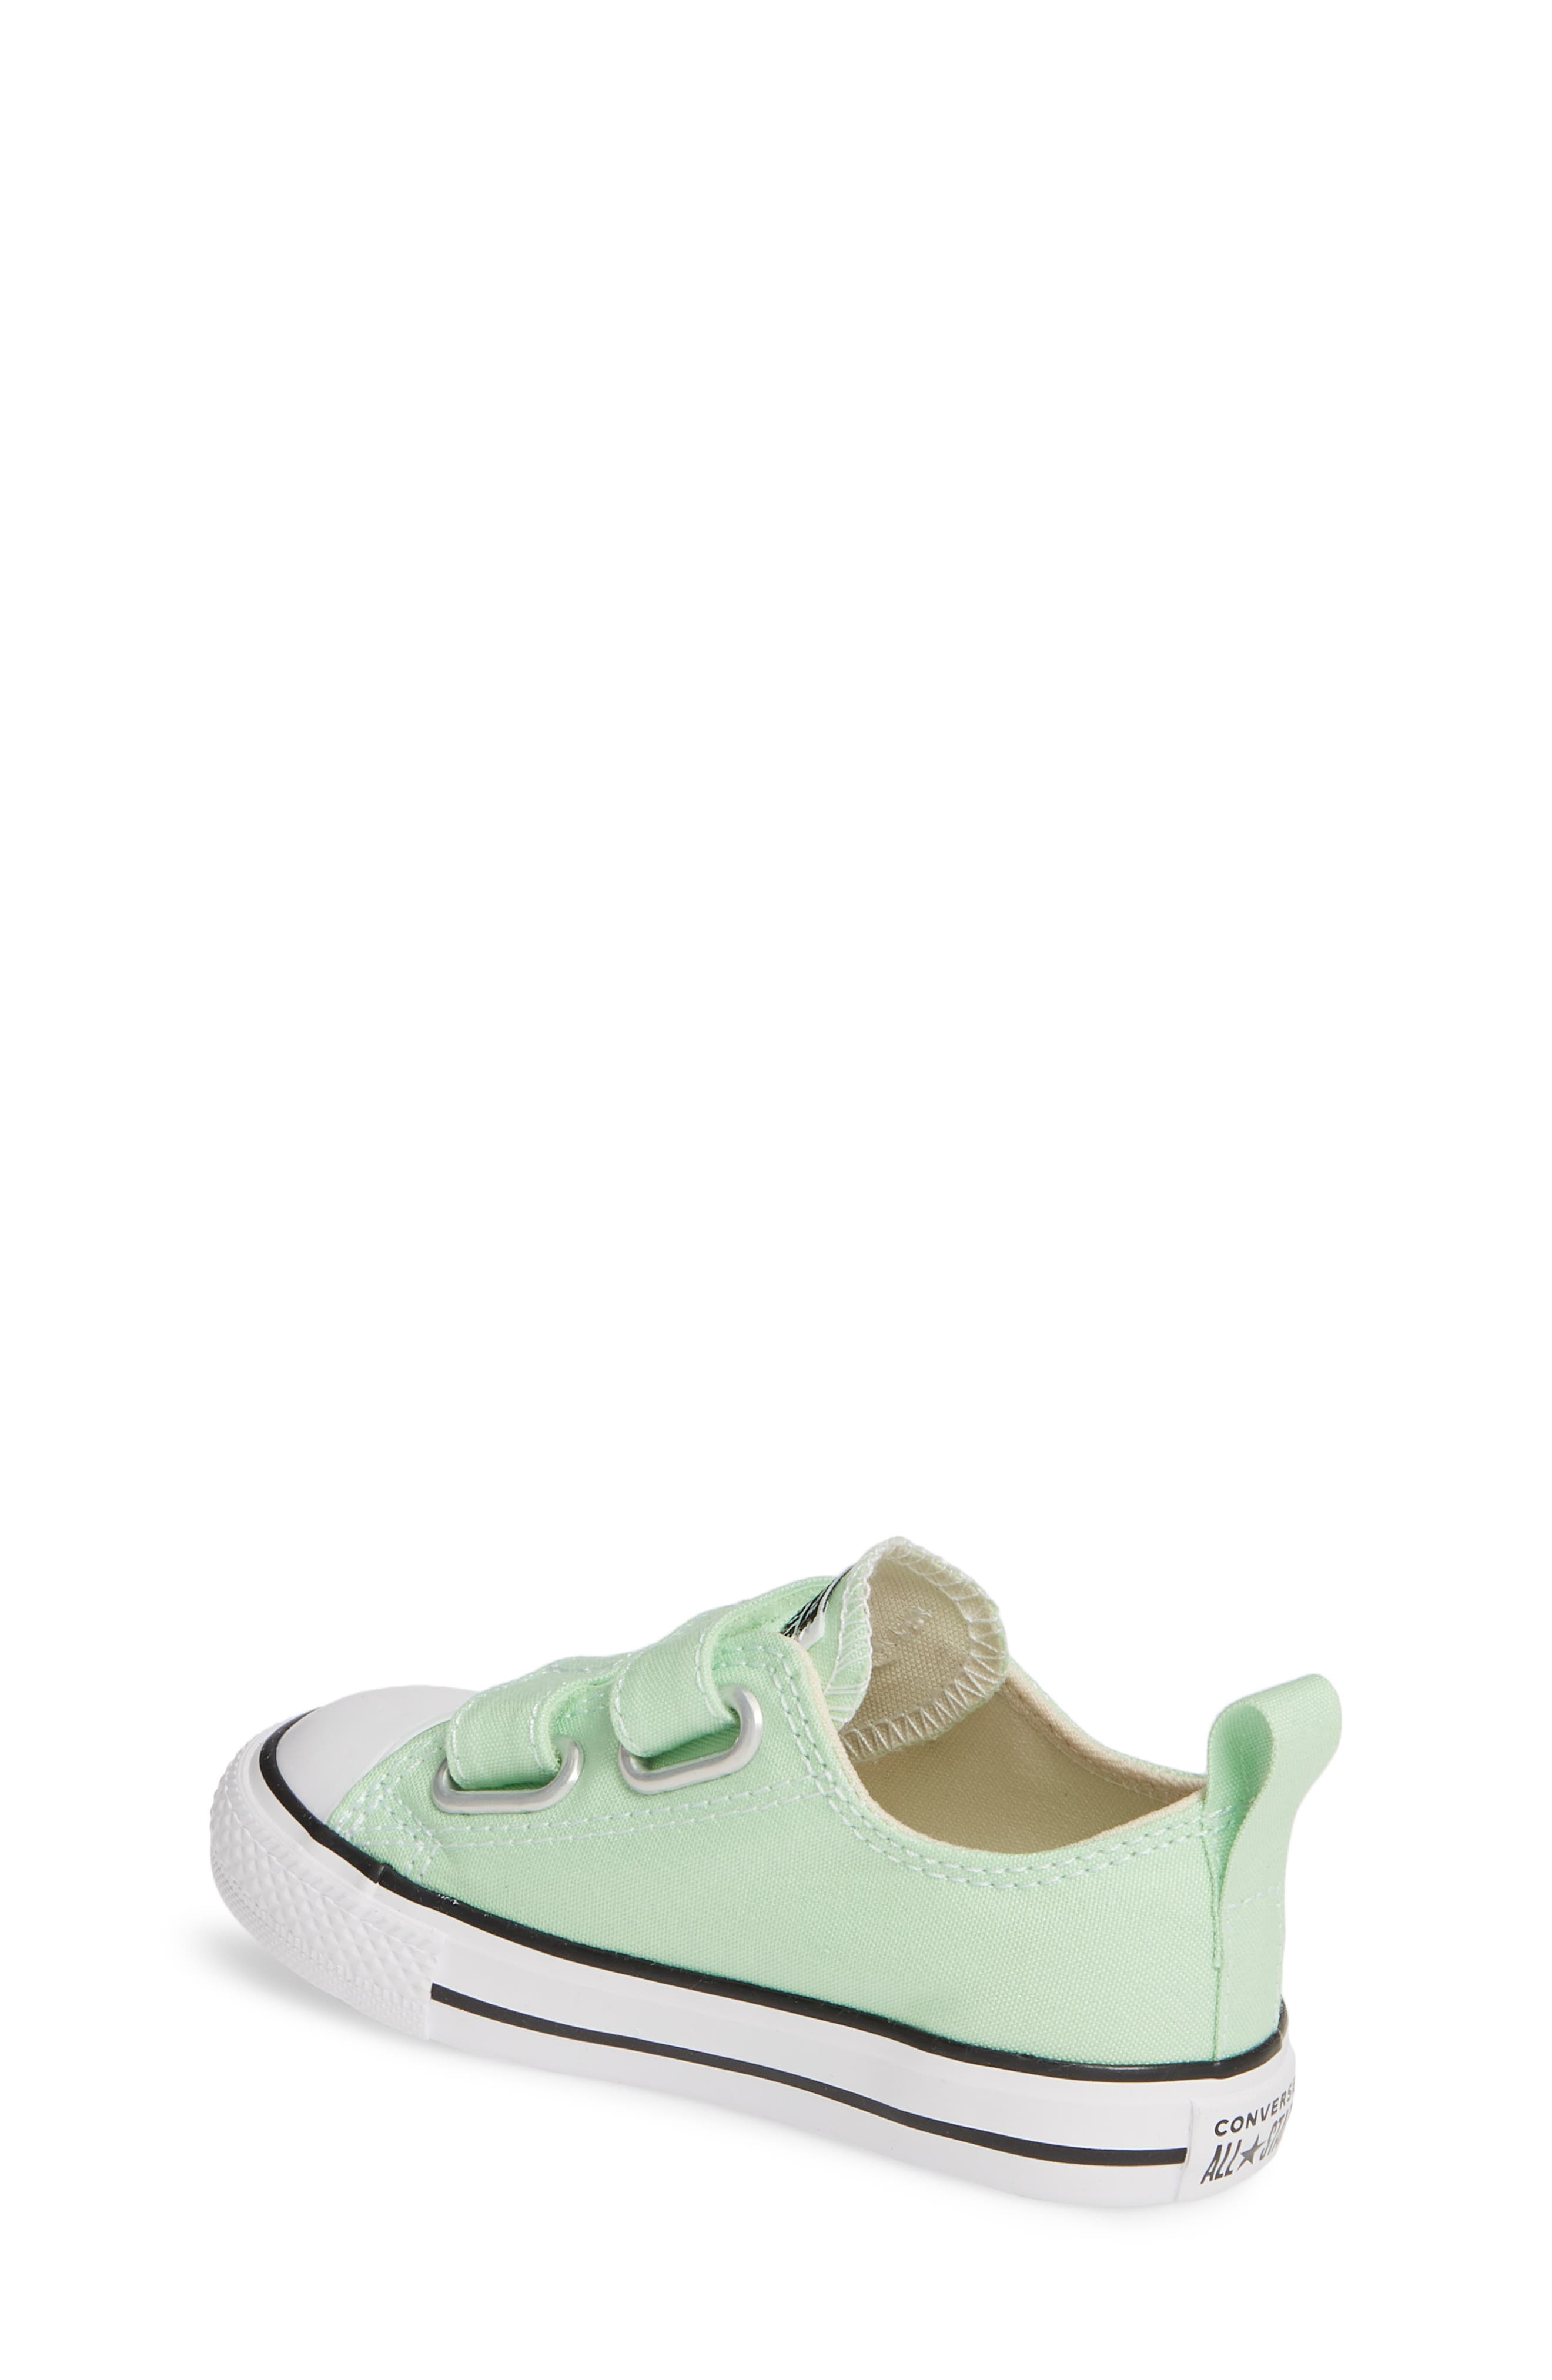 ,                             Chuck Taylor<sup>®</sup> 'Double Strap' Sneaker,                             Alternate thumbnail 2, color,                             LT. APHID GREEN